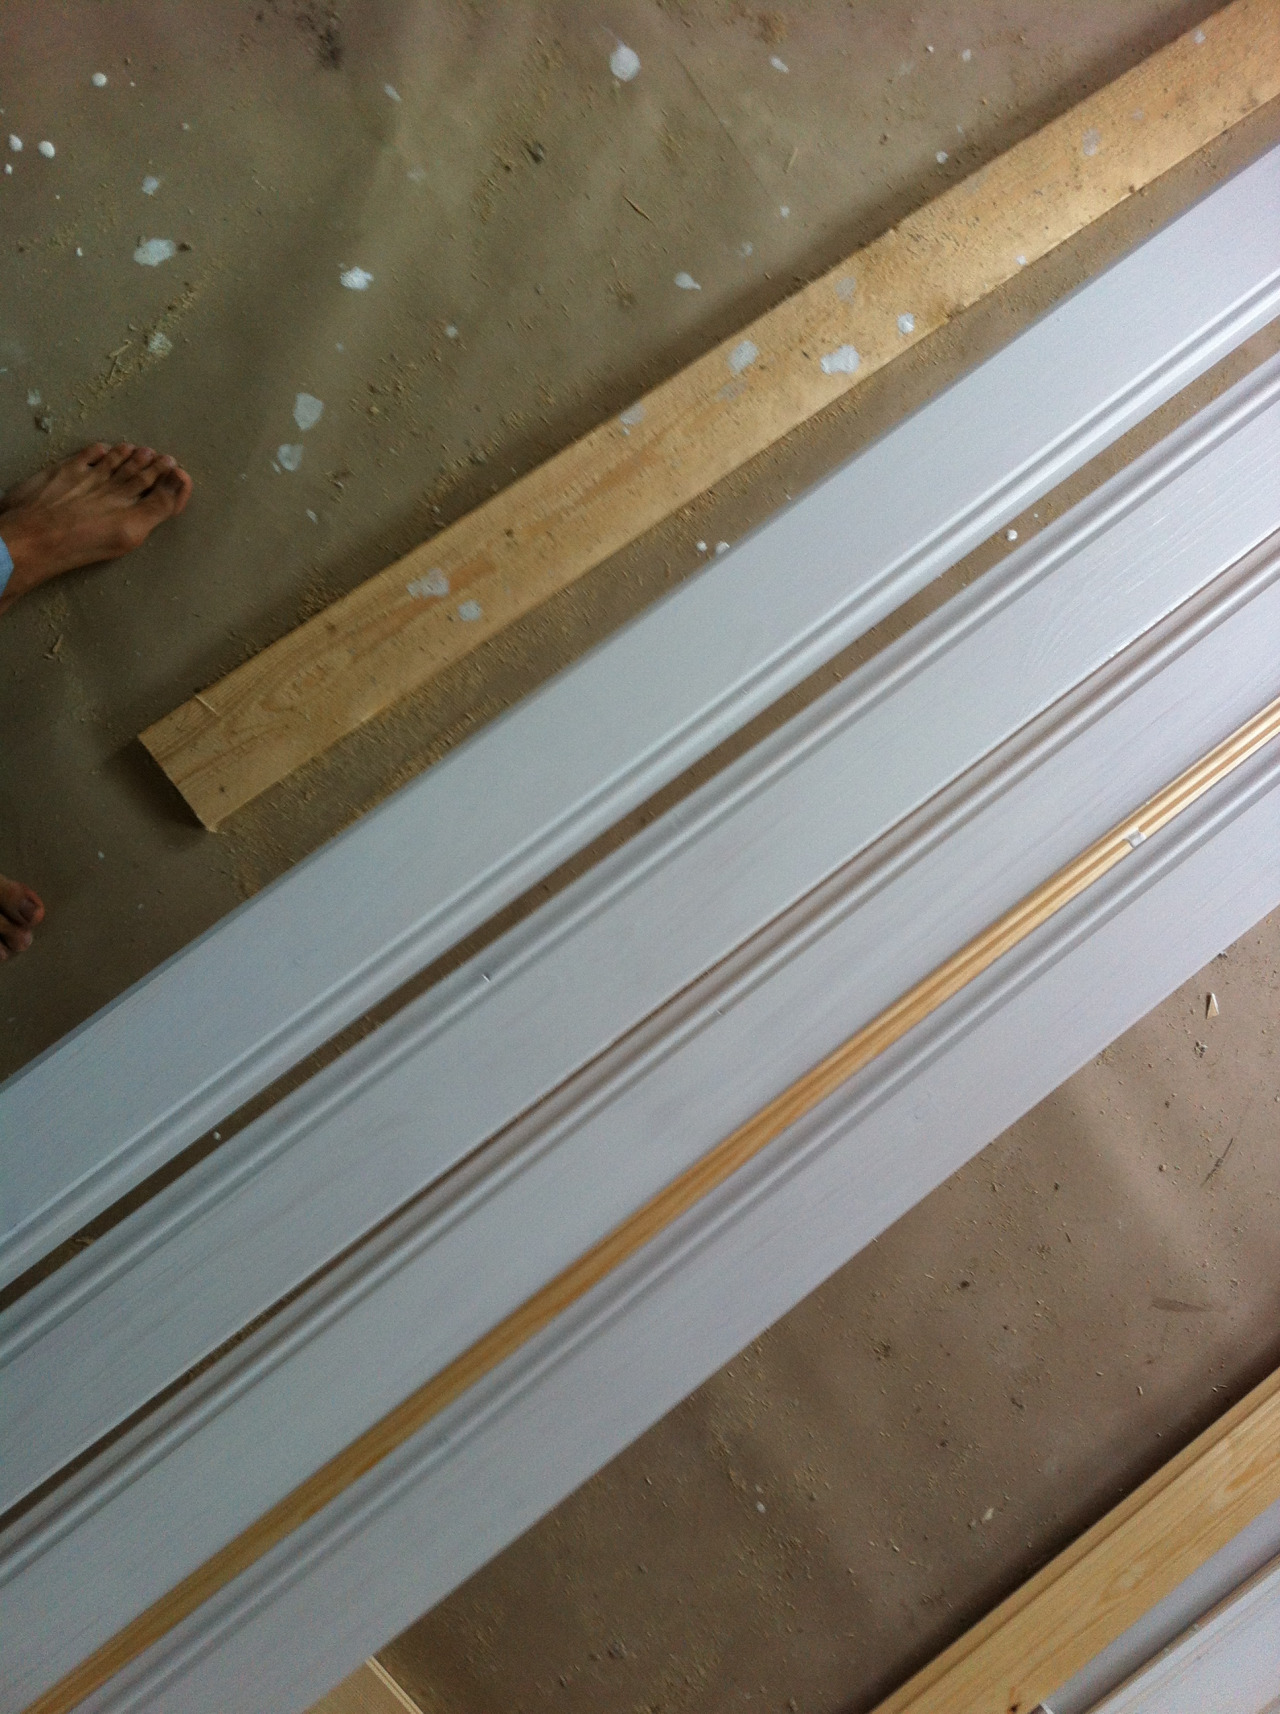 Painting planks for the new ceiling